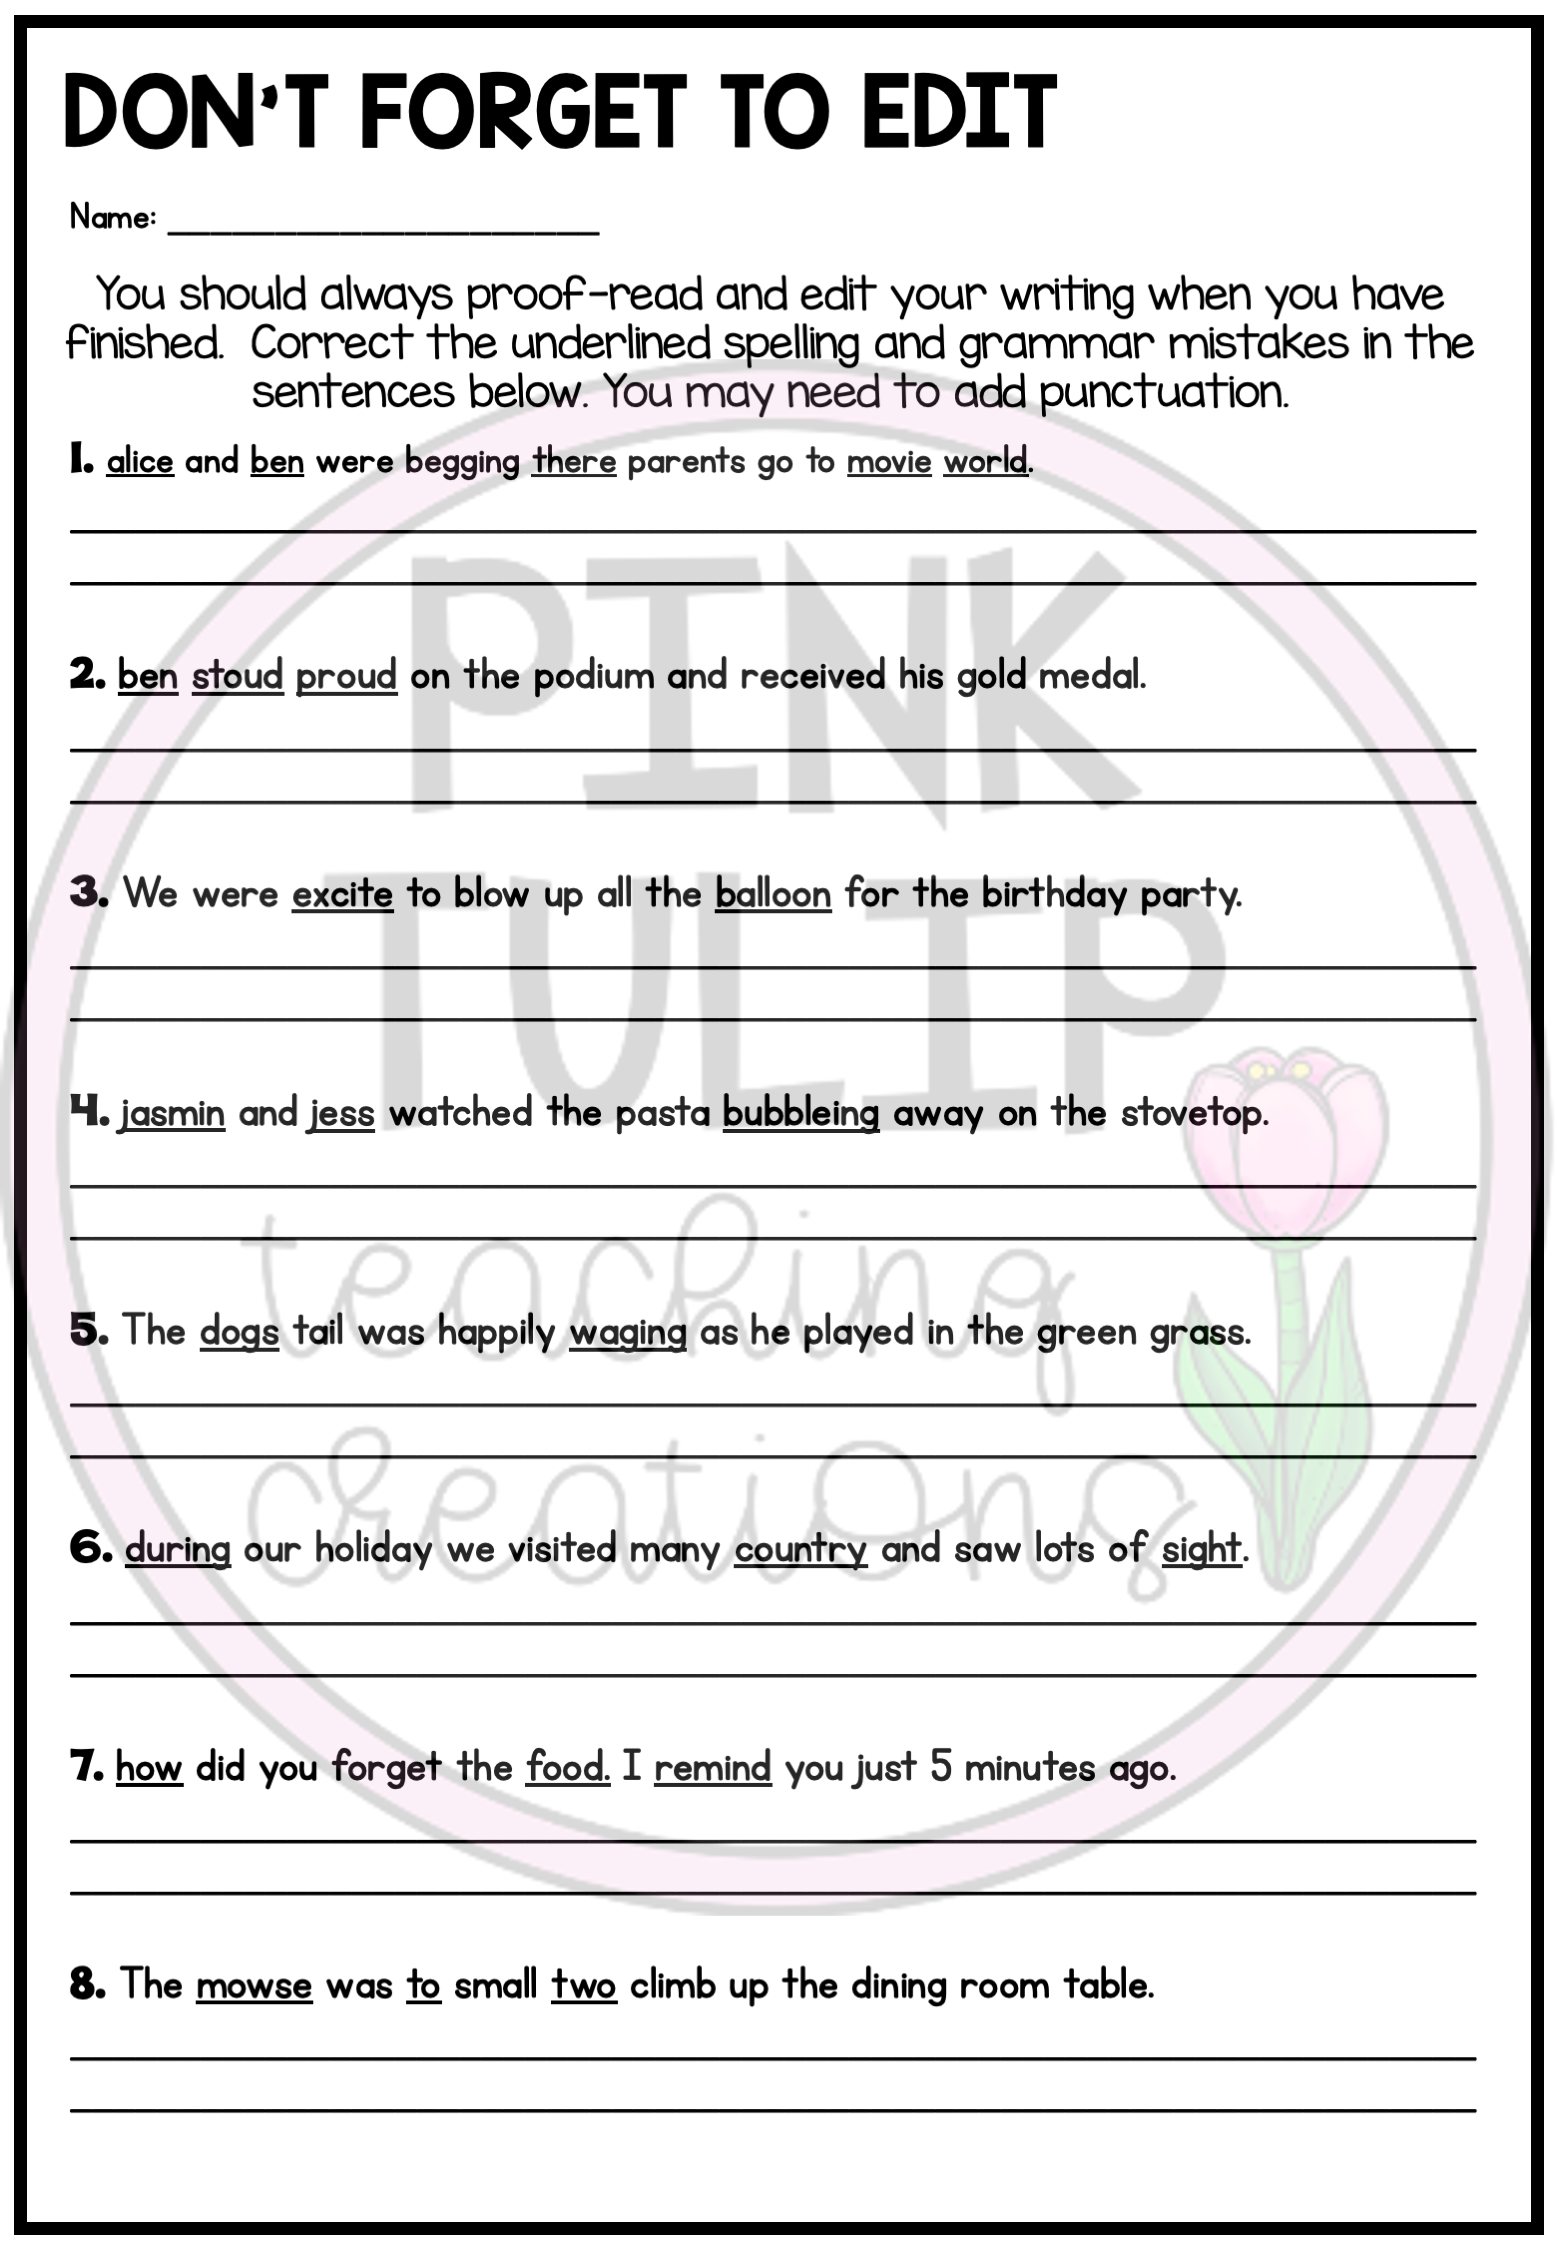 Proofreading And Editing Worksheets Printable   Printable Worksheets and  Activities for Teachers [ 2249 x 1557 Pixel ]